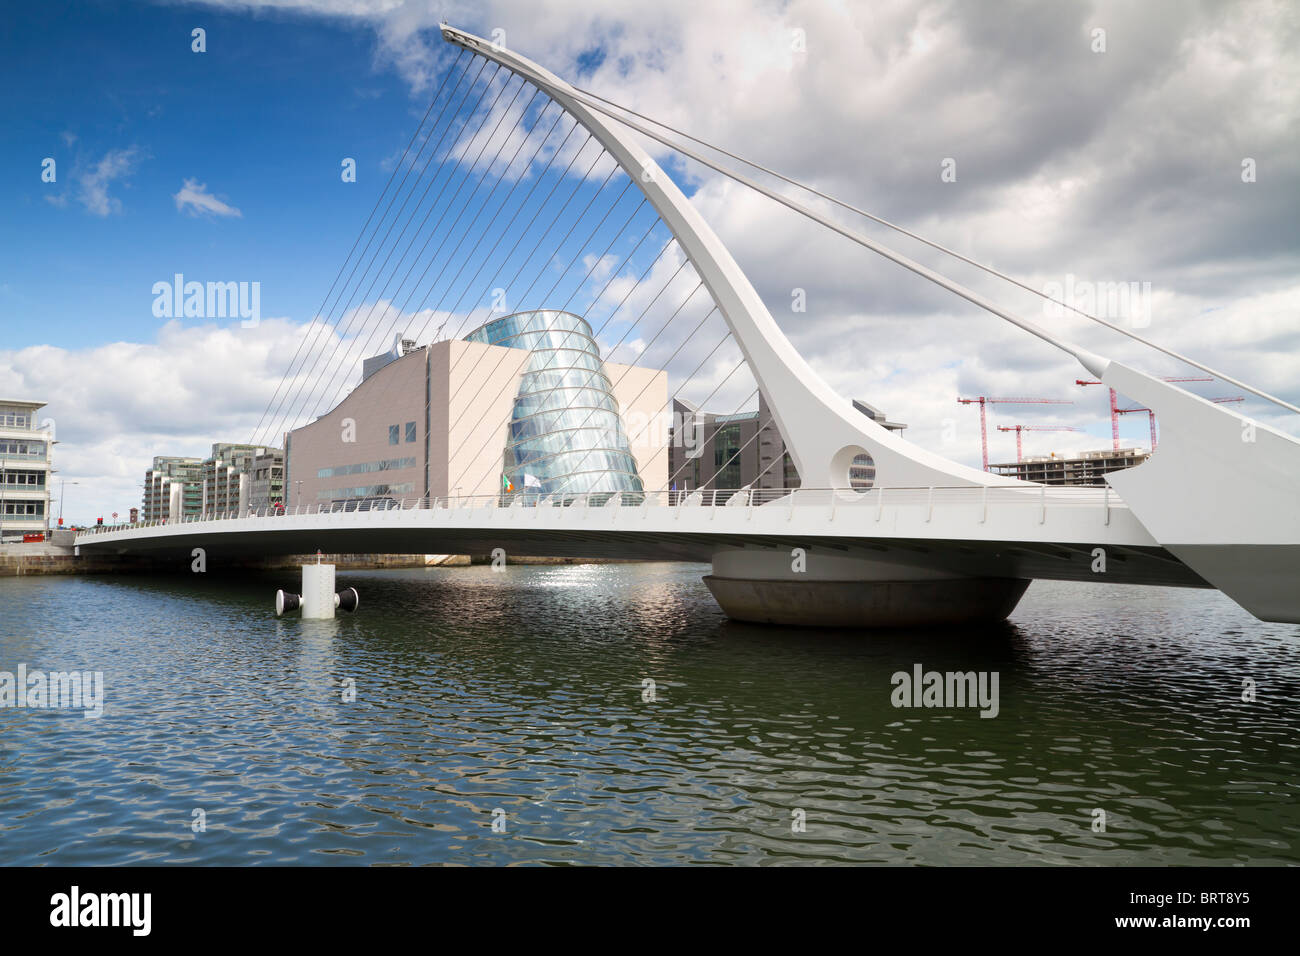 The Samuel Beckett Bridge links the northside and southside of the city over the River Liffey in the Dublin, Ireland. - Stock Image